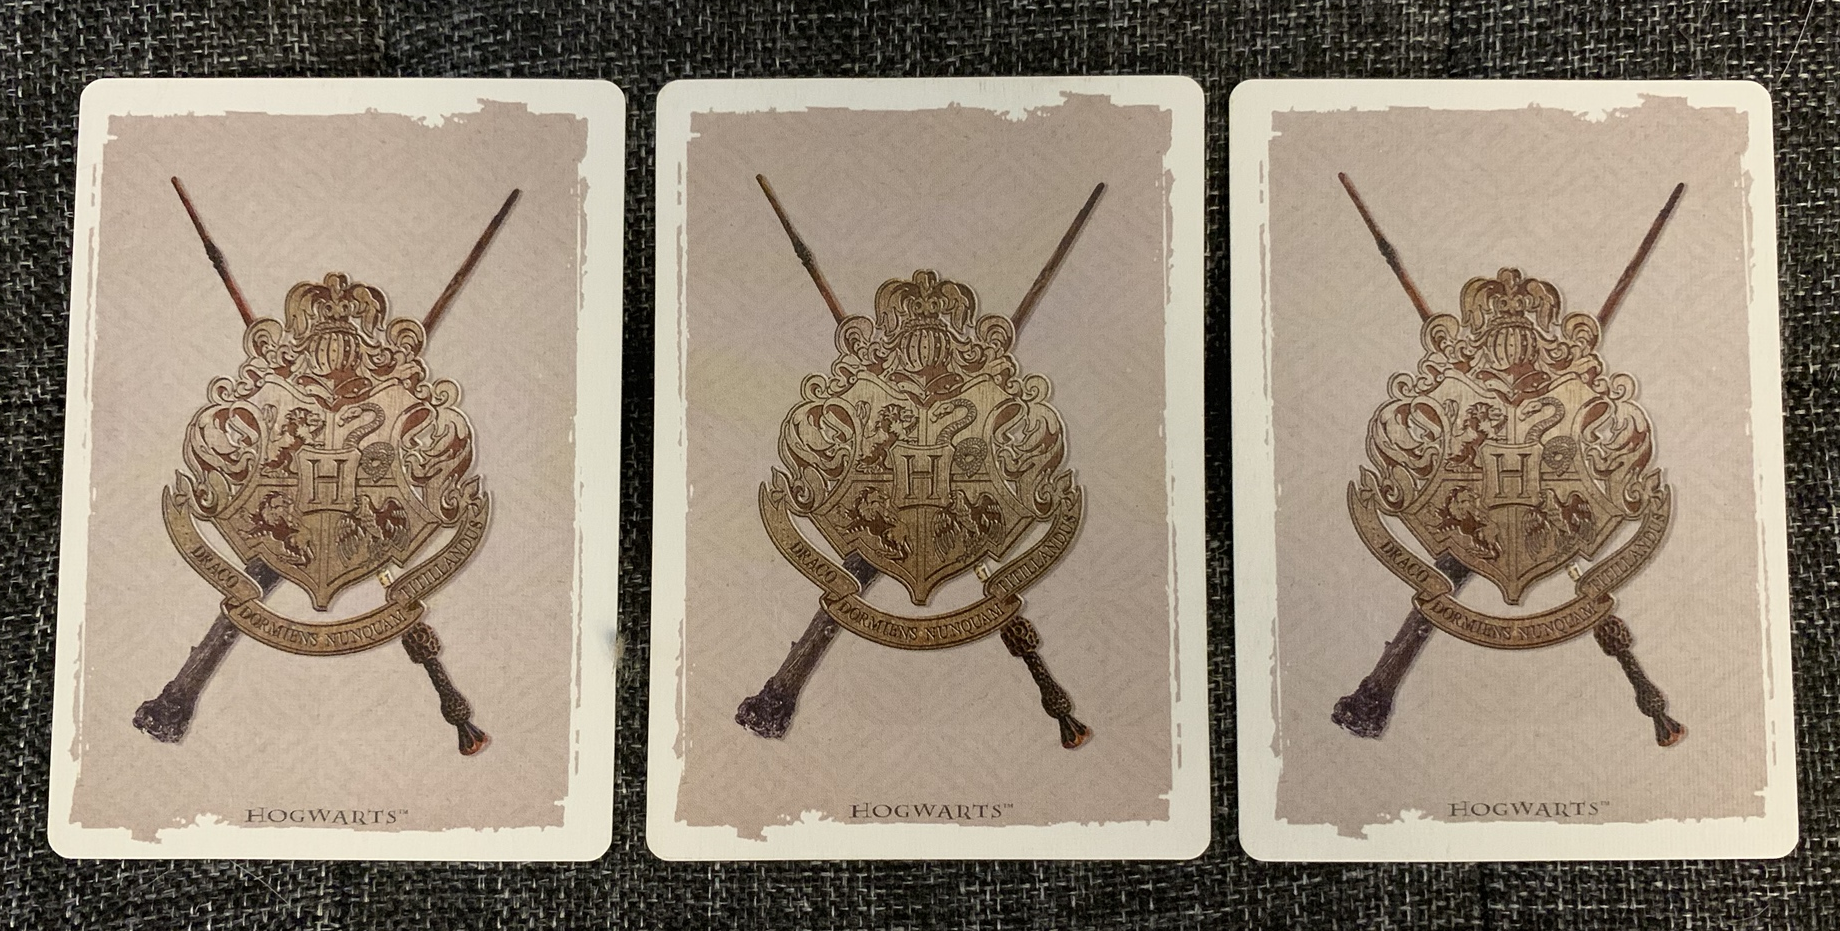 A subtle color difference (the middle card is the odd one out)